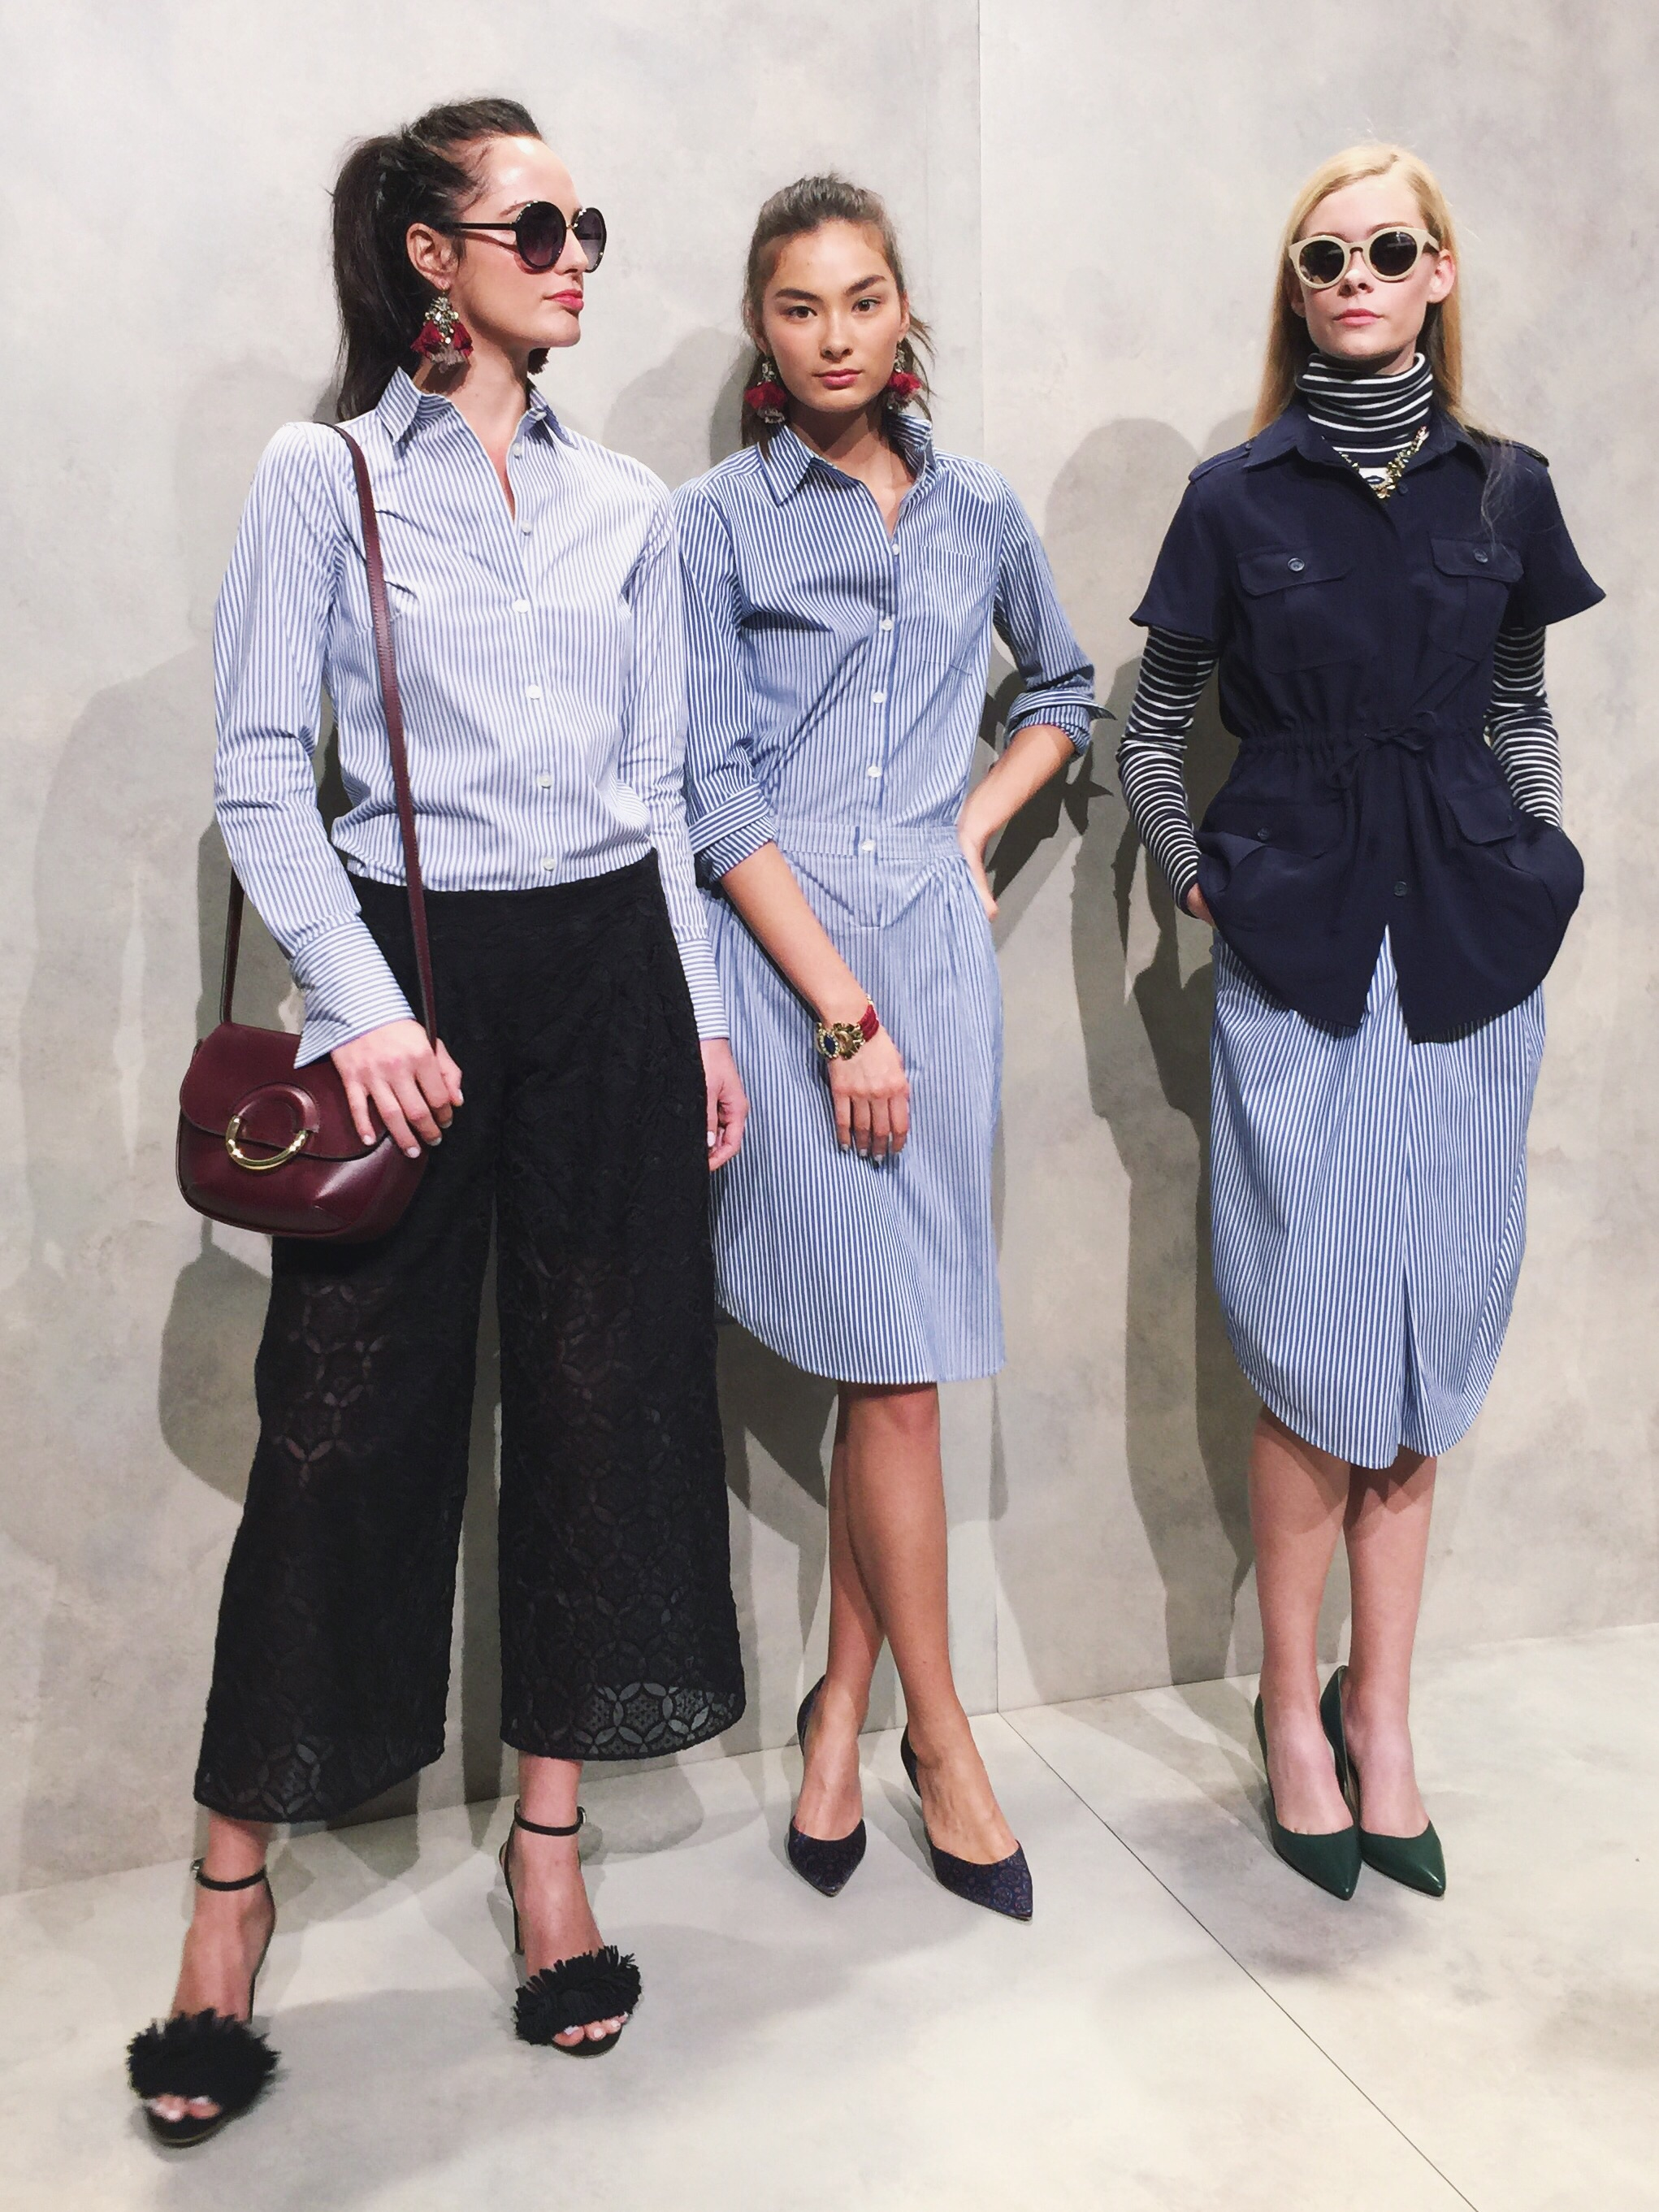 Classic shades of blue, stripes, forest green, and culottes.